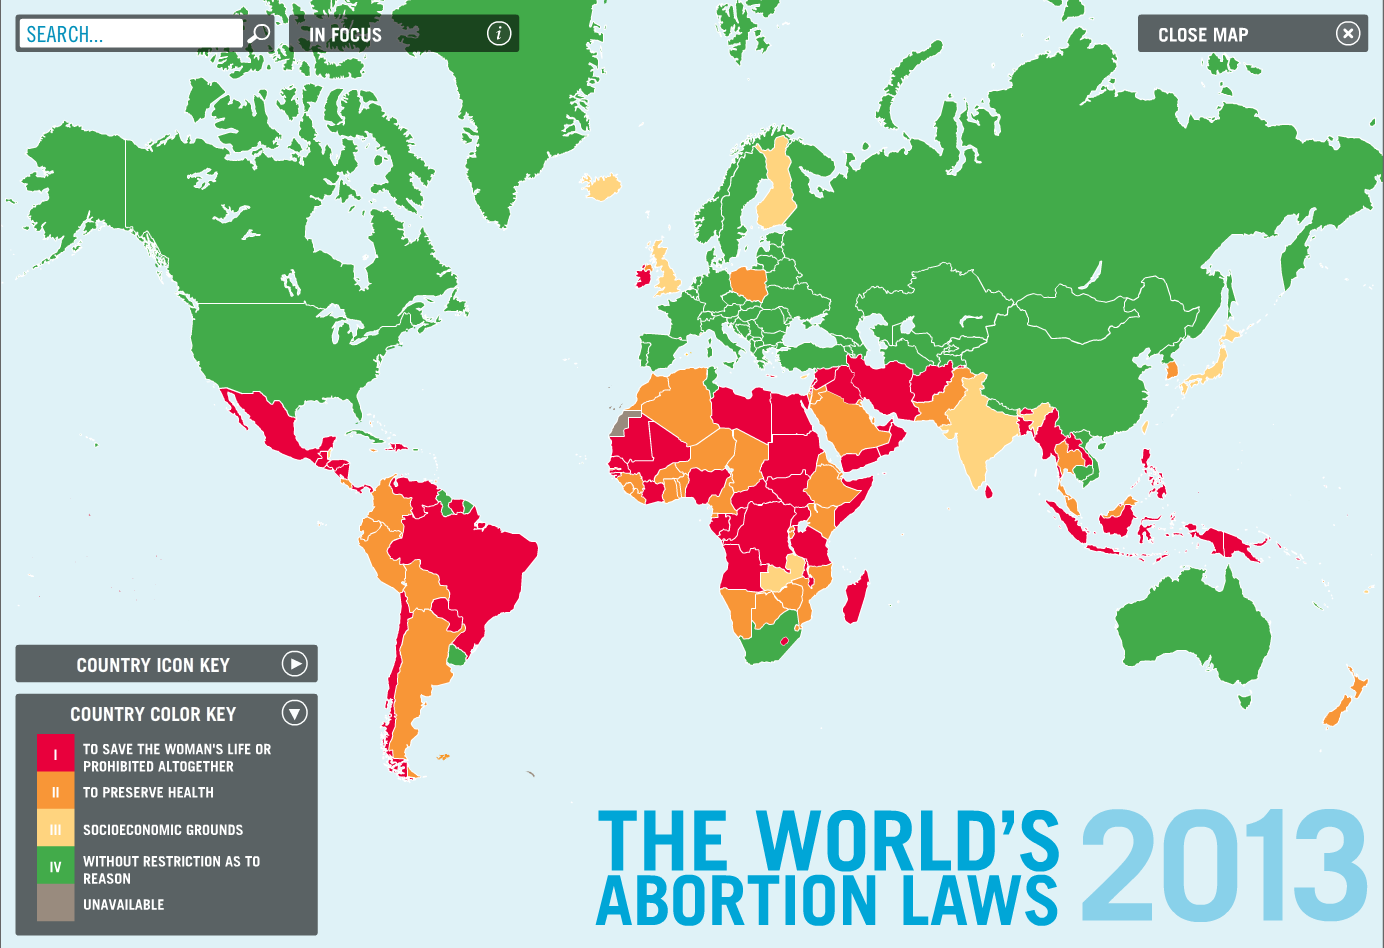 world abortion laws 2013